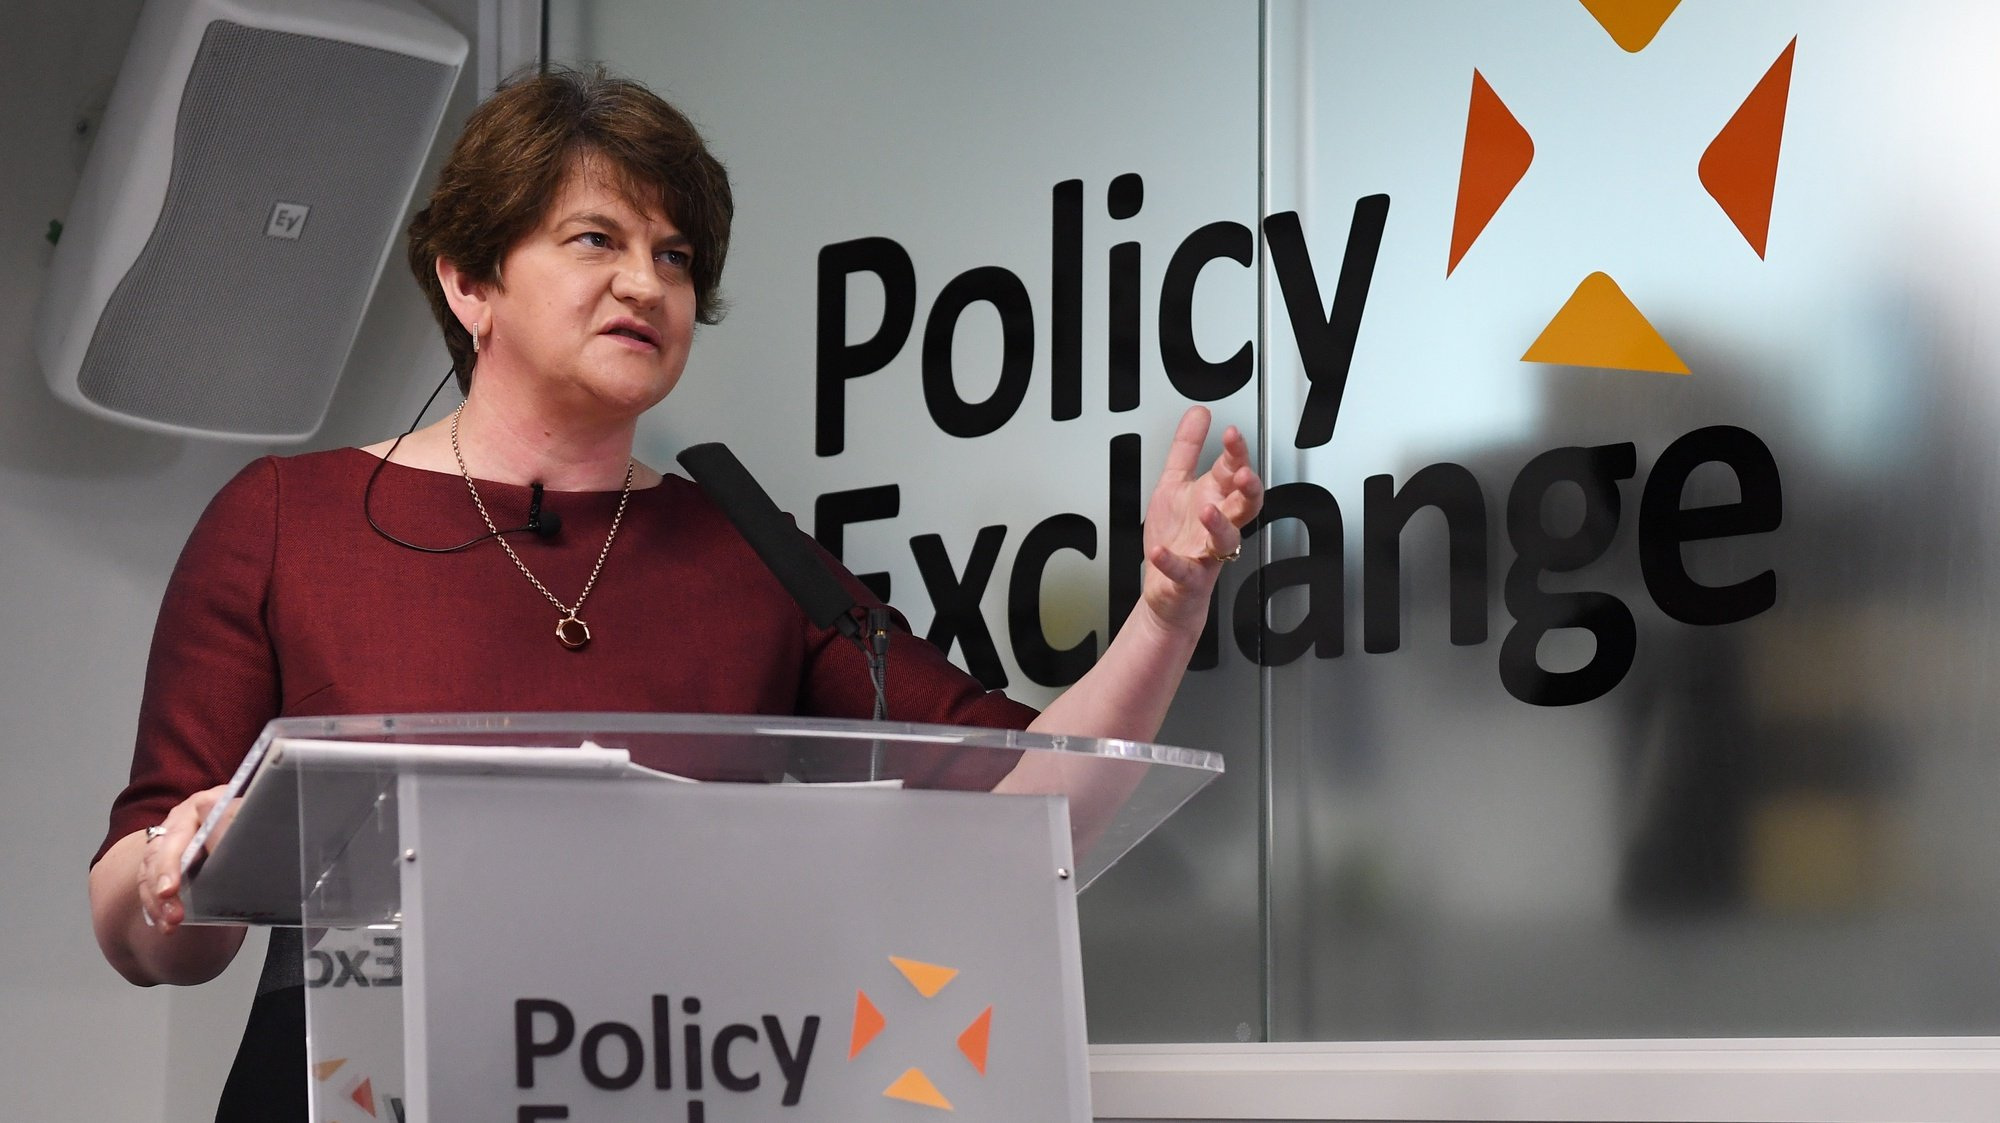 epa09165636 (FILE) - Northern Ireland Democratic Unionist Party (DUP) leader Arlene Foster speaks at an event on the Brexit Irish backstop, at Policy Exchange in Westminster London, Britain, 26 June 2019 (reissued 28 April 2021). Arlene Foster on 28 April 2021 in a statement announced she will be stepping down as Democratic Unionist Party (DUP) party leader on 20 May and as First Minister of Northern Ireland by the end of June.  EPA/FACUNDO ARRIZABALAGA *** Local Caption *** 55299694